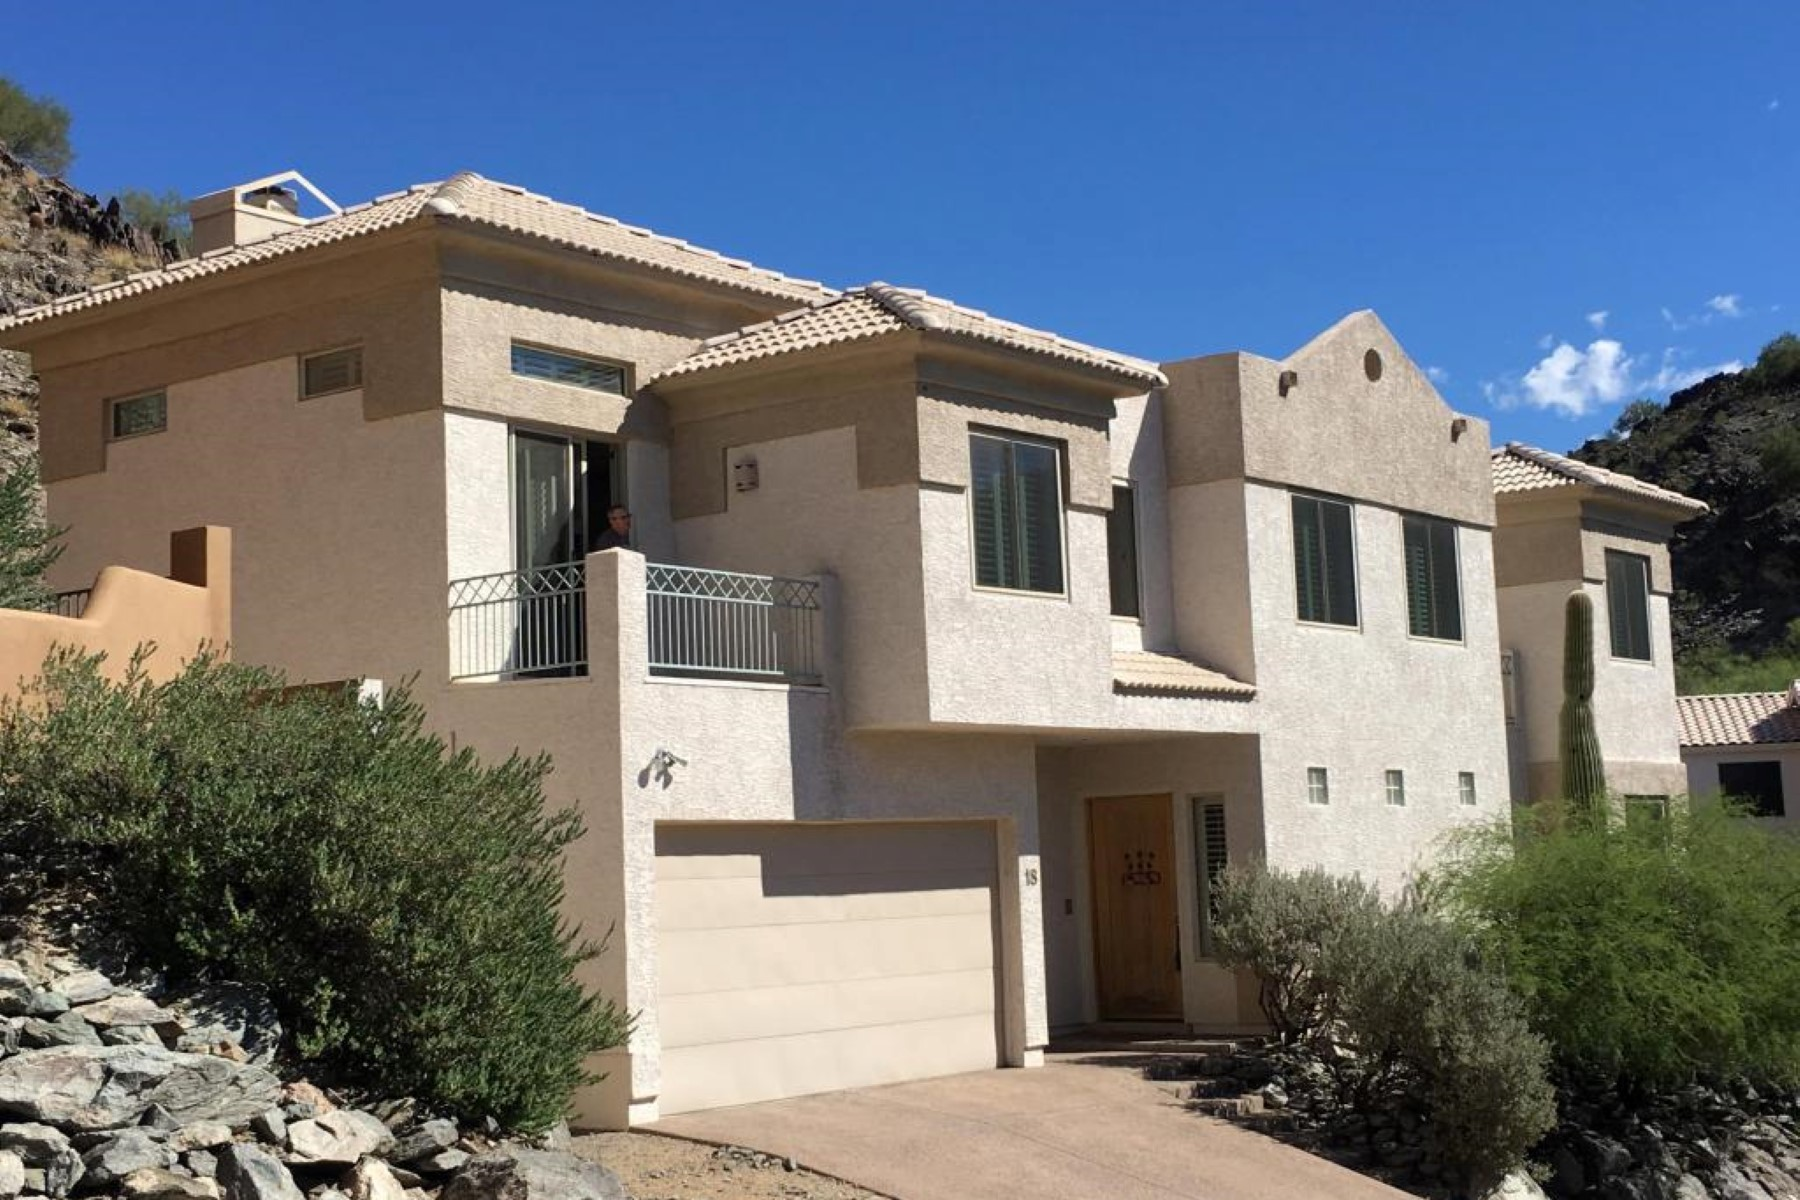 Single Family Home for Sale at Perfect hidden gem in the exclusive gated community of Mount Central Place 18 W North Ln Phoenix, Arizona, 85021 United States